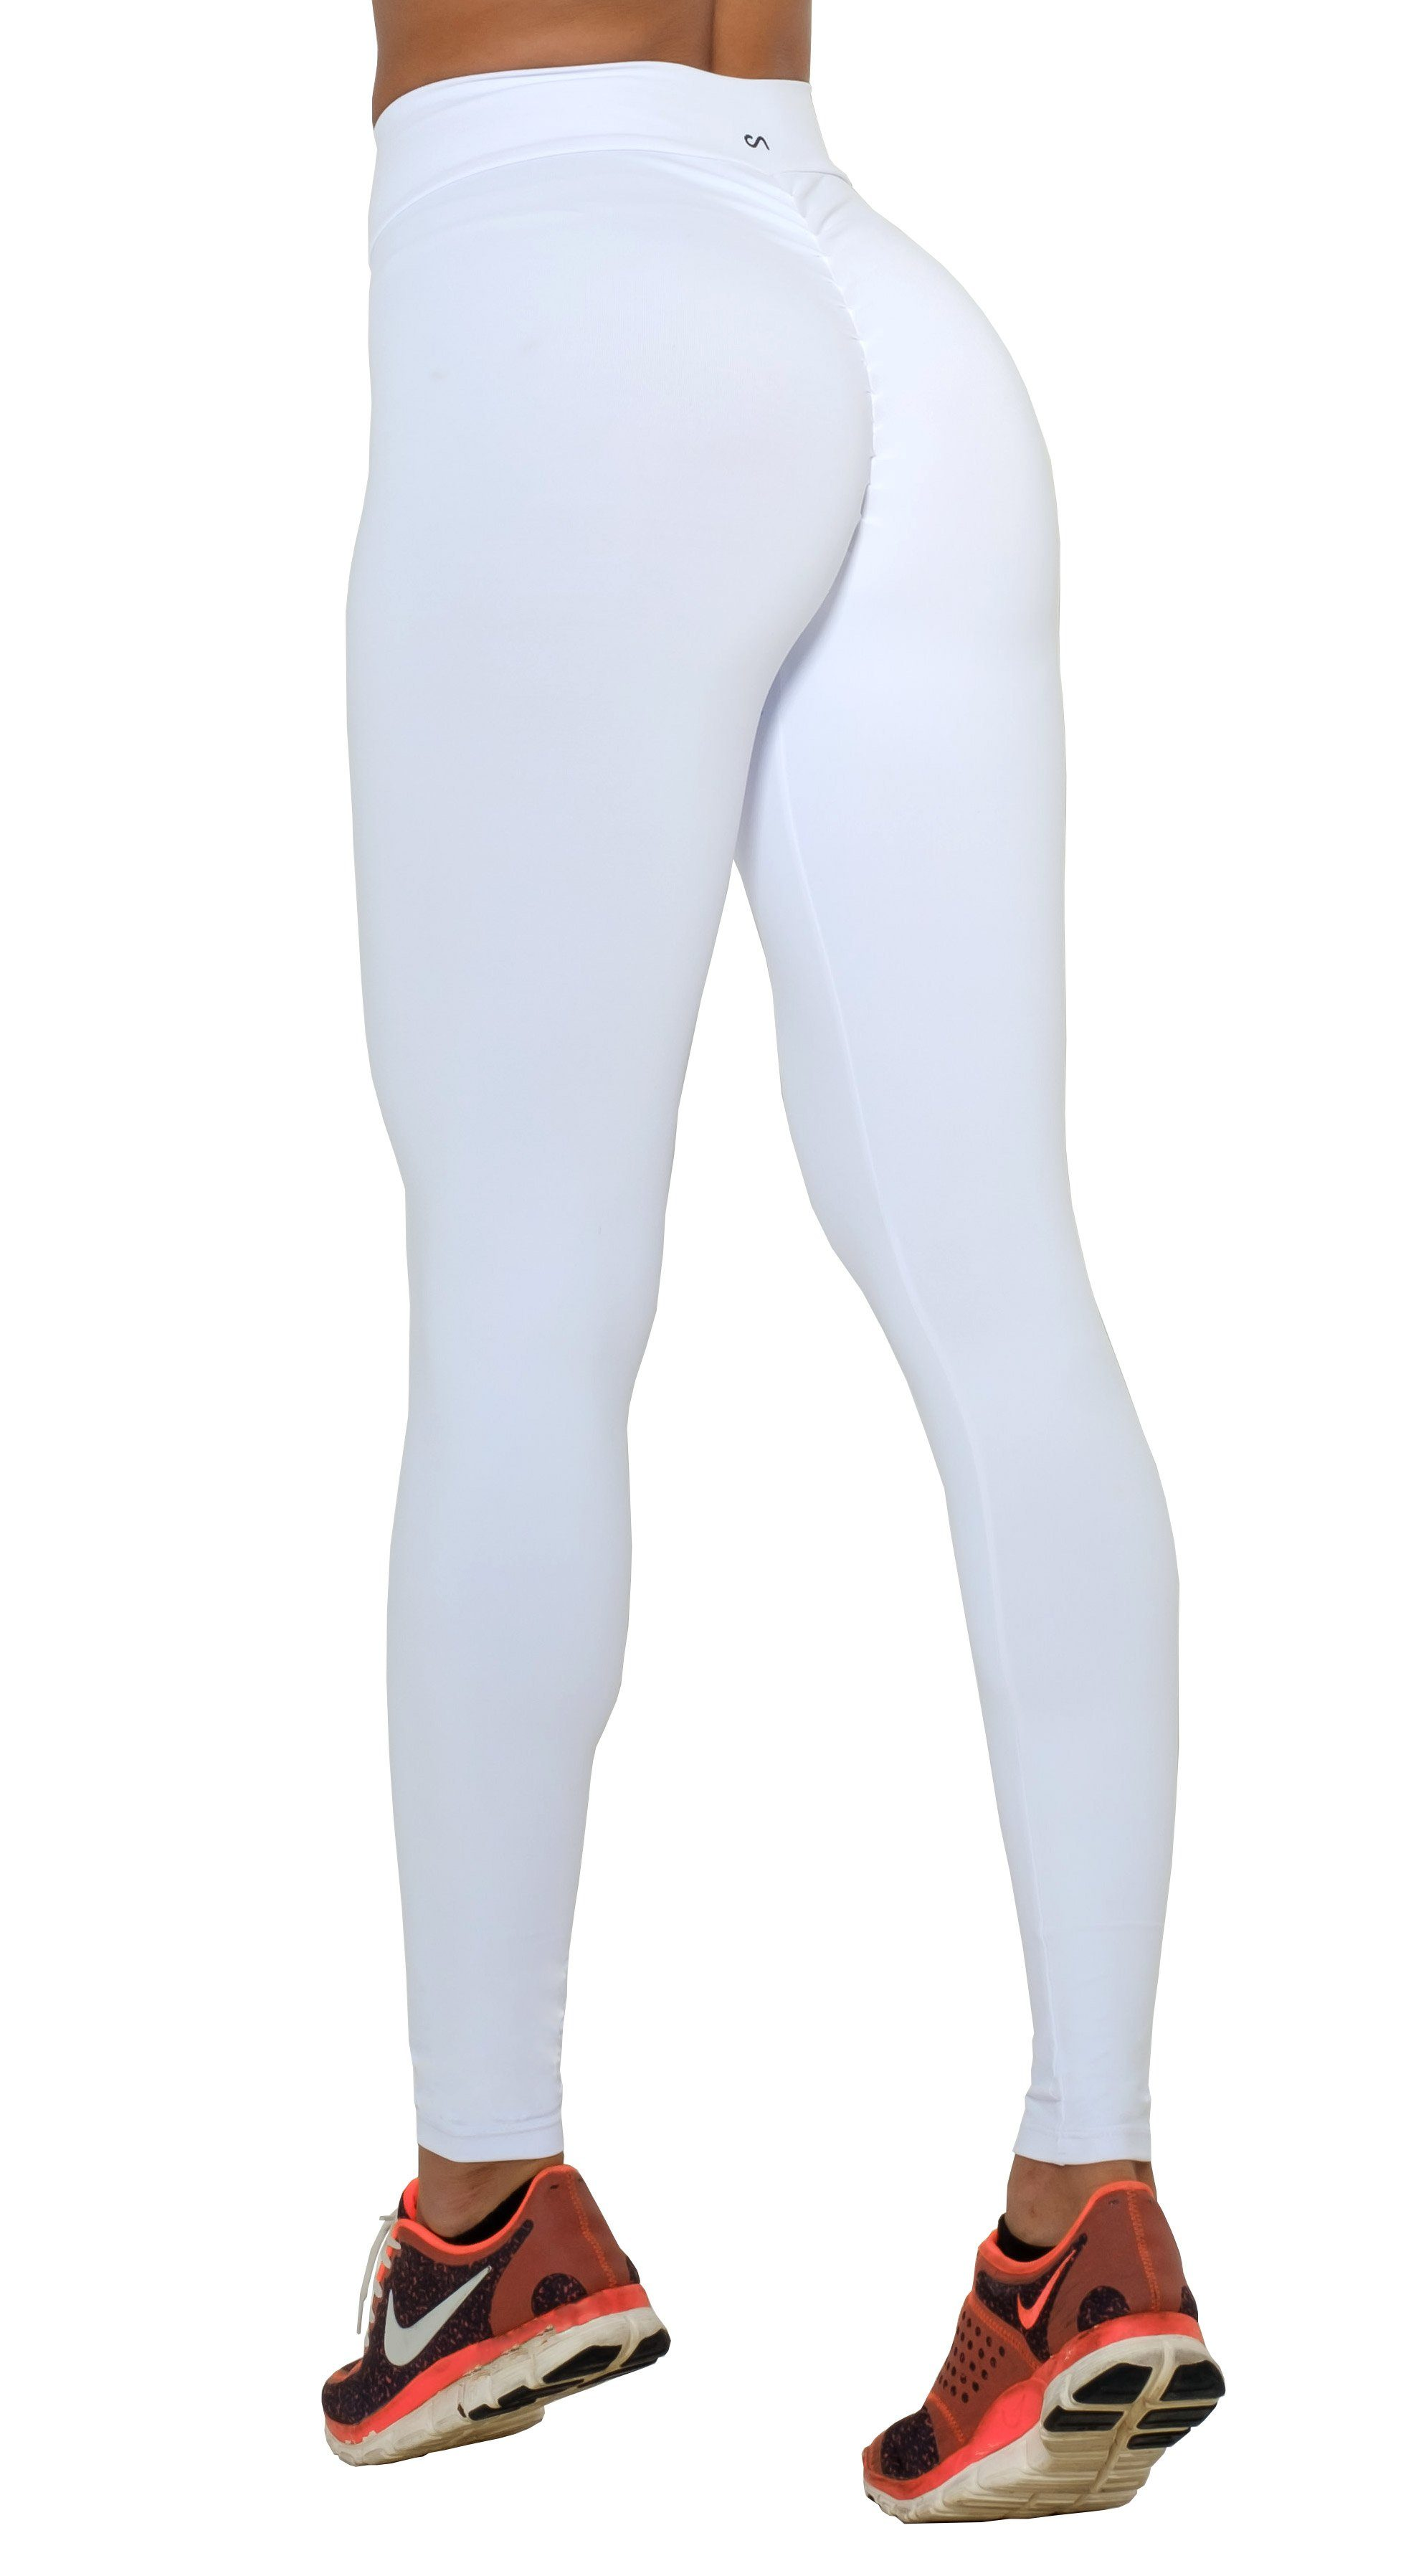 0fde2becd19662 Canoan - Brazilian Workout Legging - Scrunch Booty Lift! Compression White